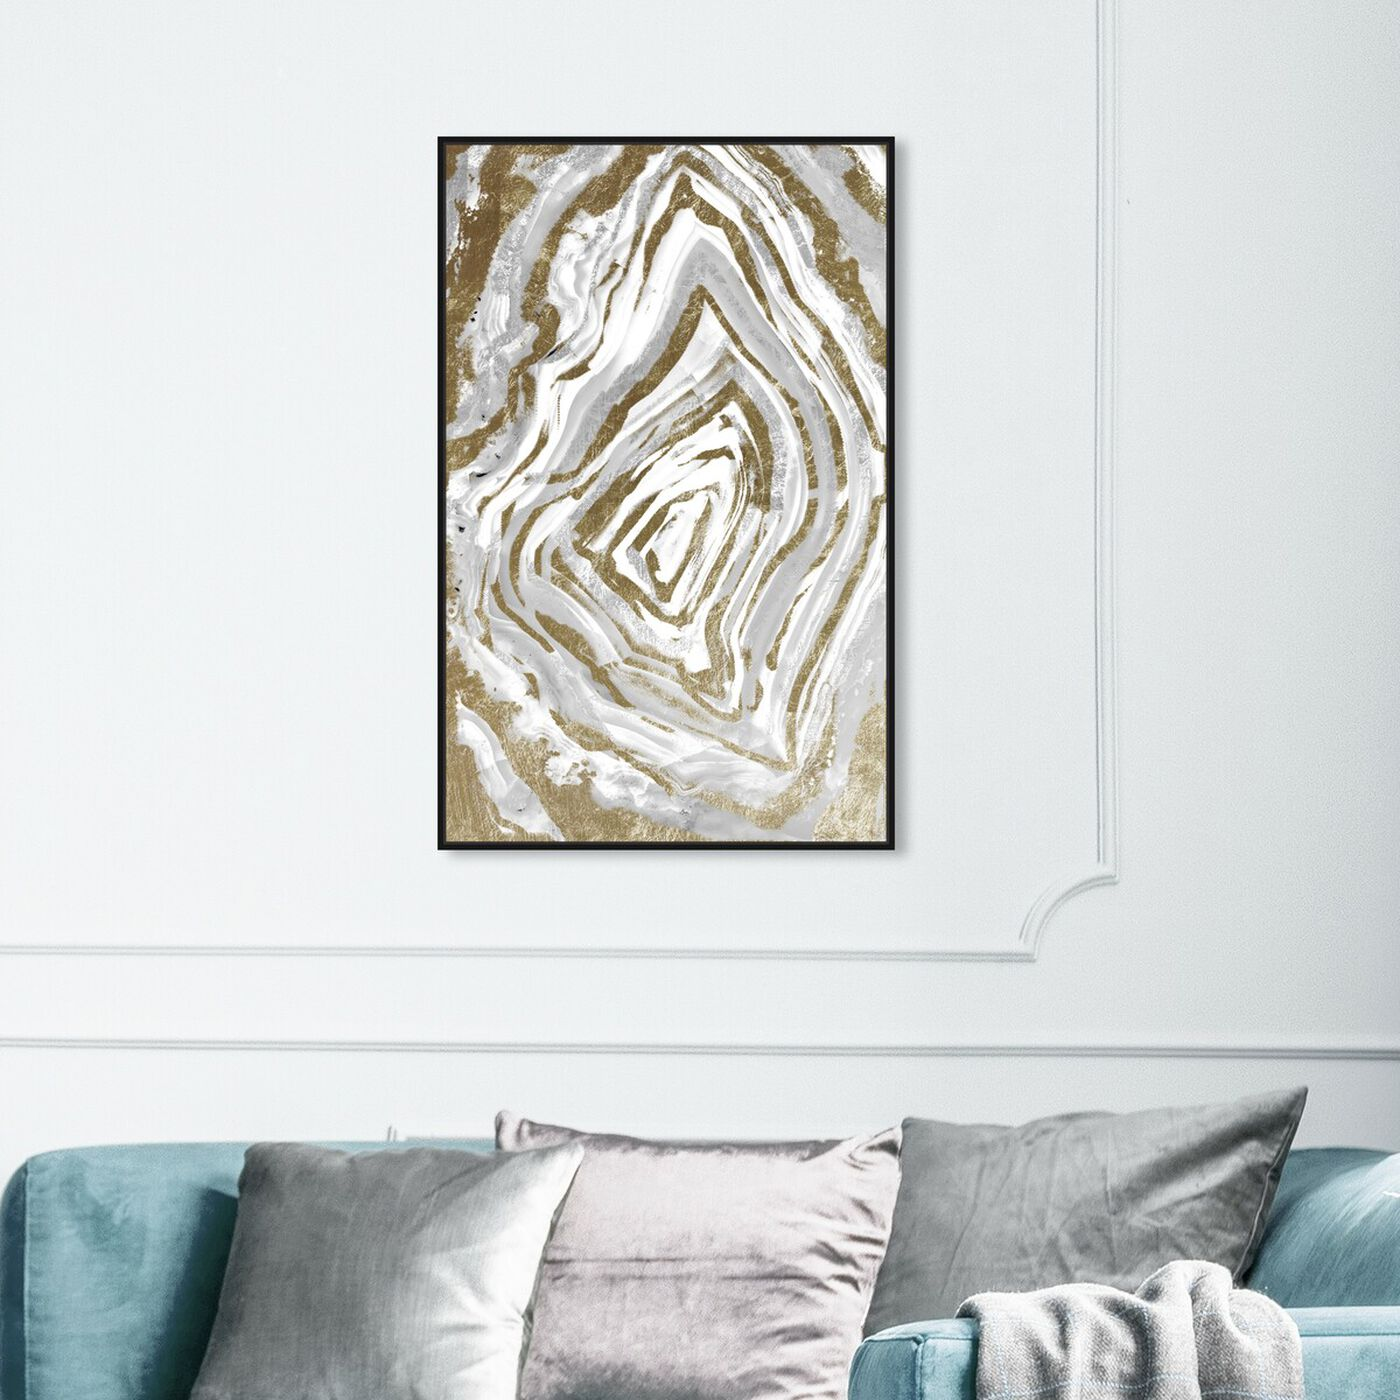 Hanging view of RawGeo Adore Clair featuring abstract and crystals art.